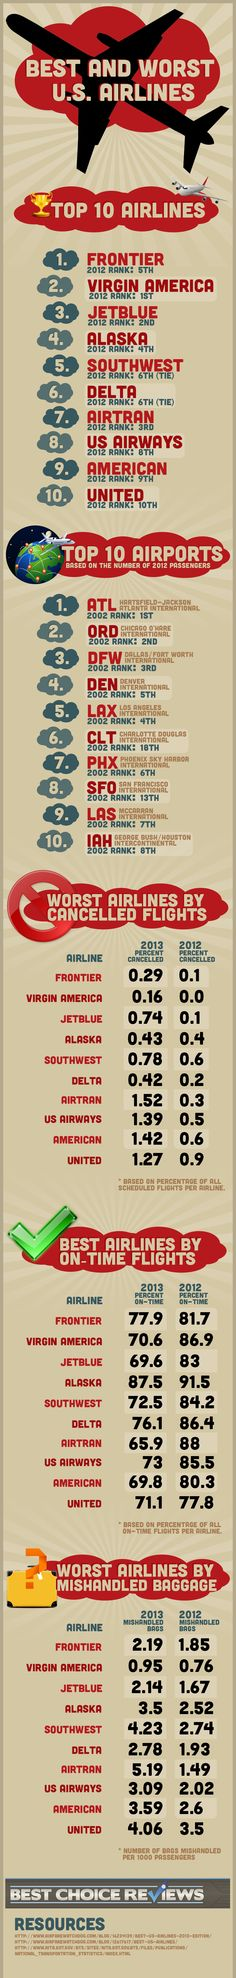 Best and Worst of U.S. Airlines